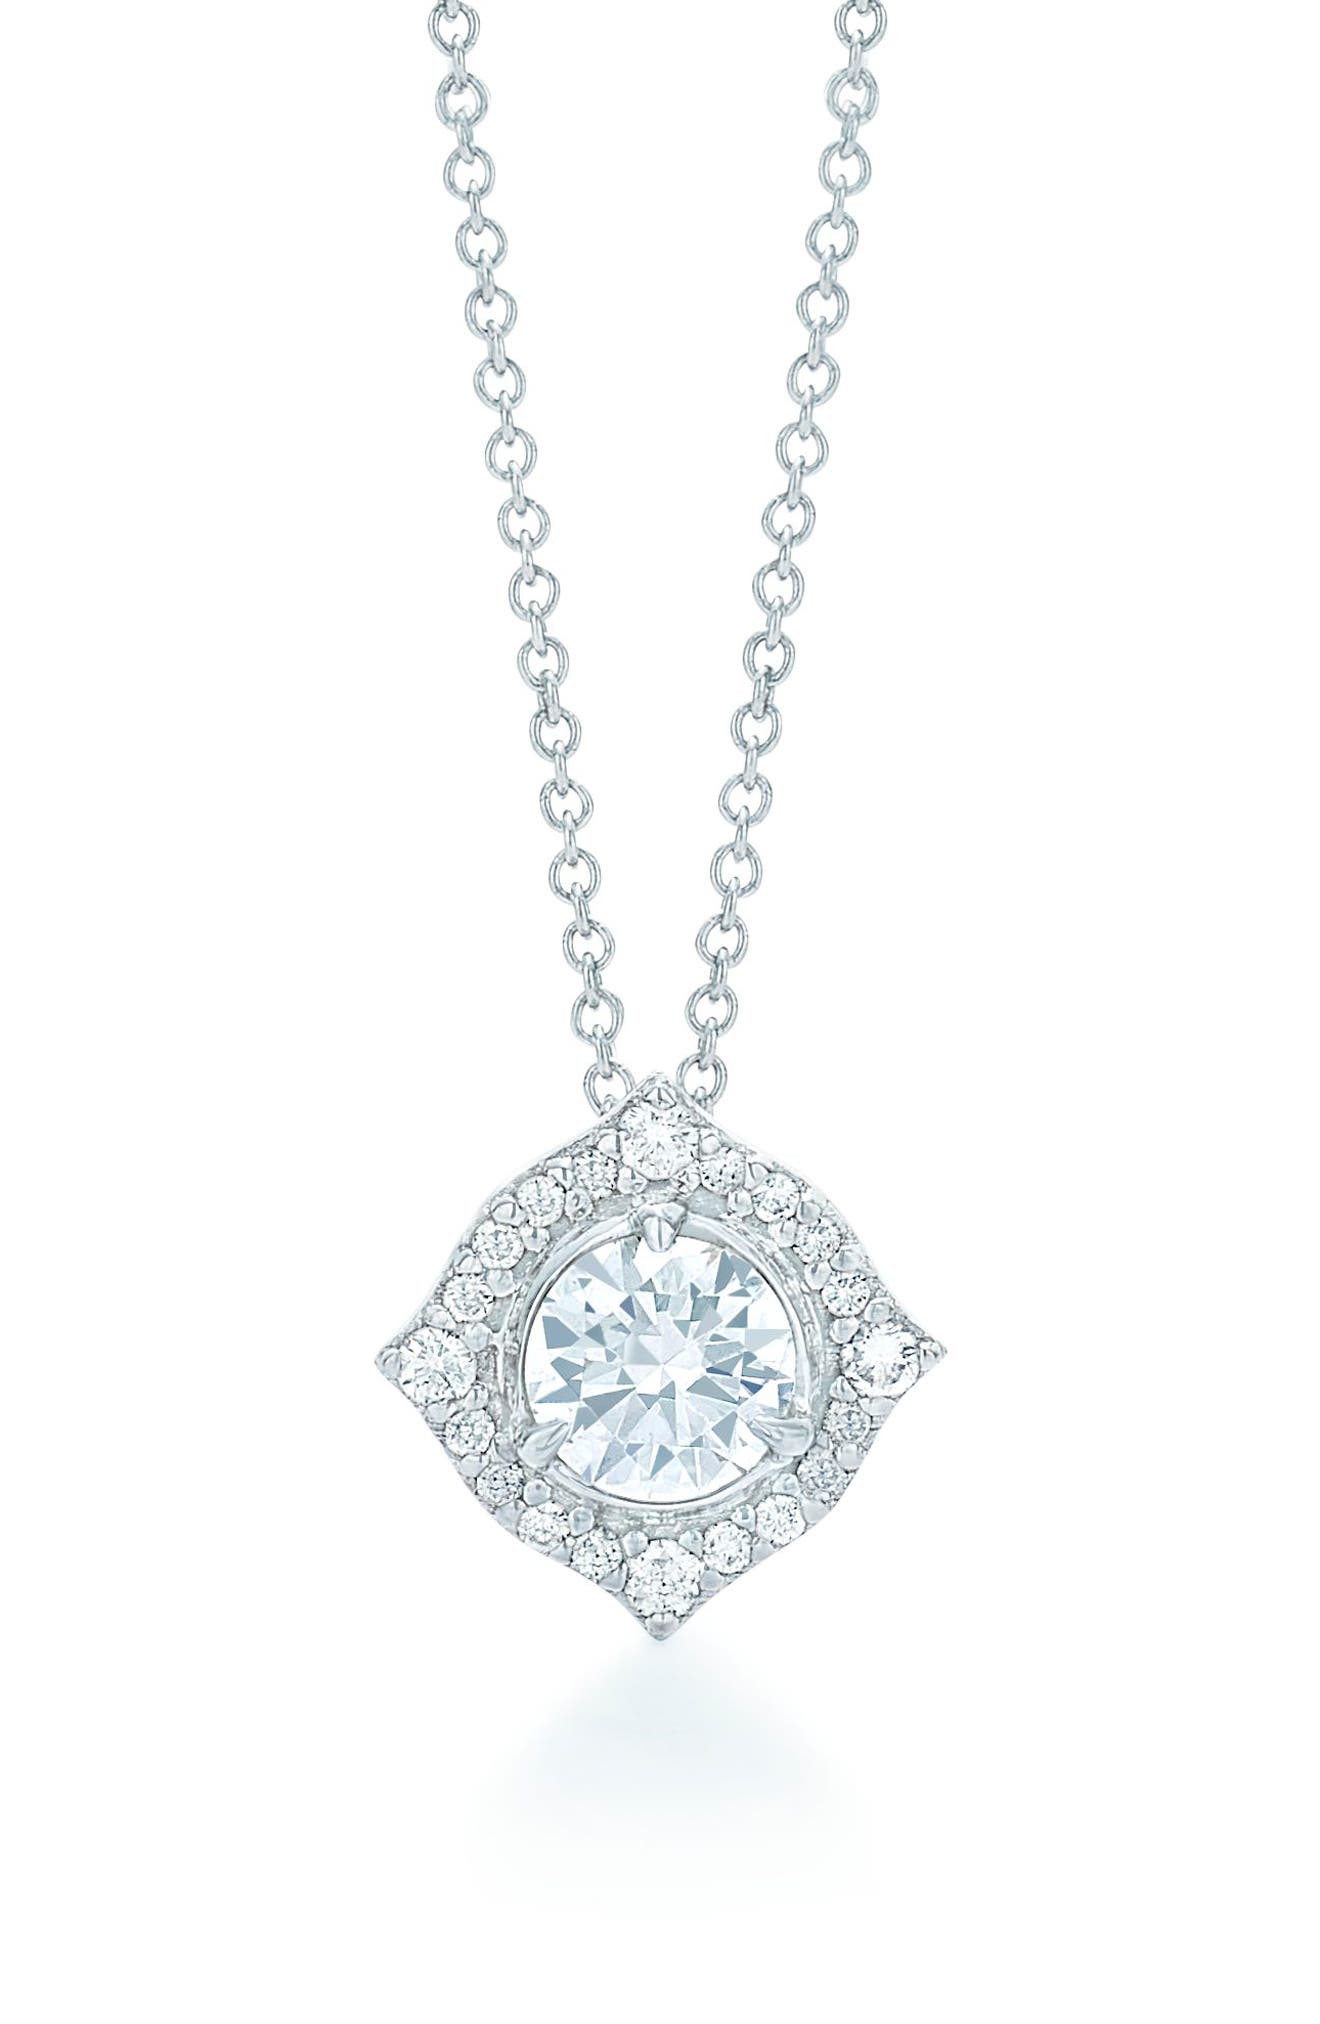 Halo Diamond Pendant Necklace,                         Main,                         color, White Gold